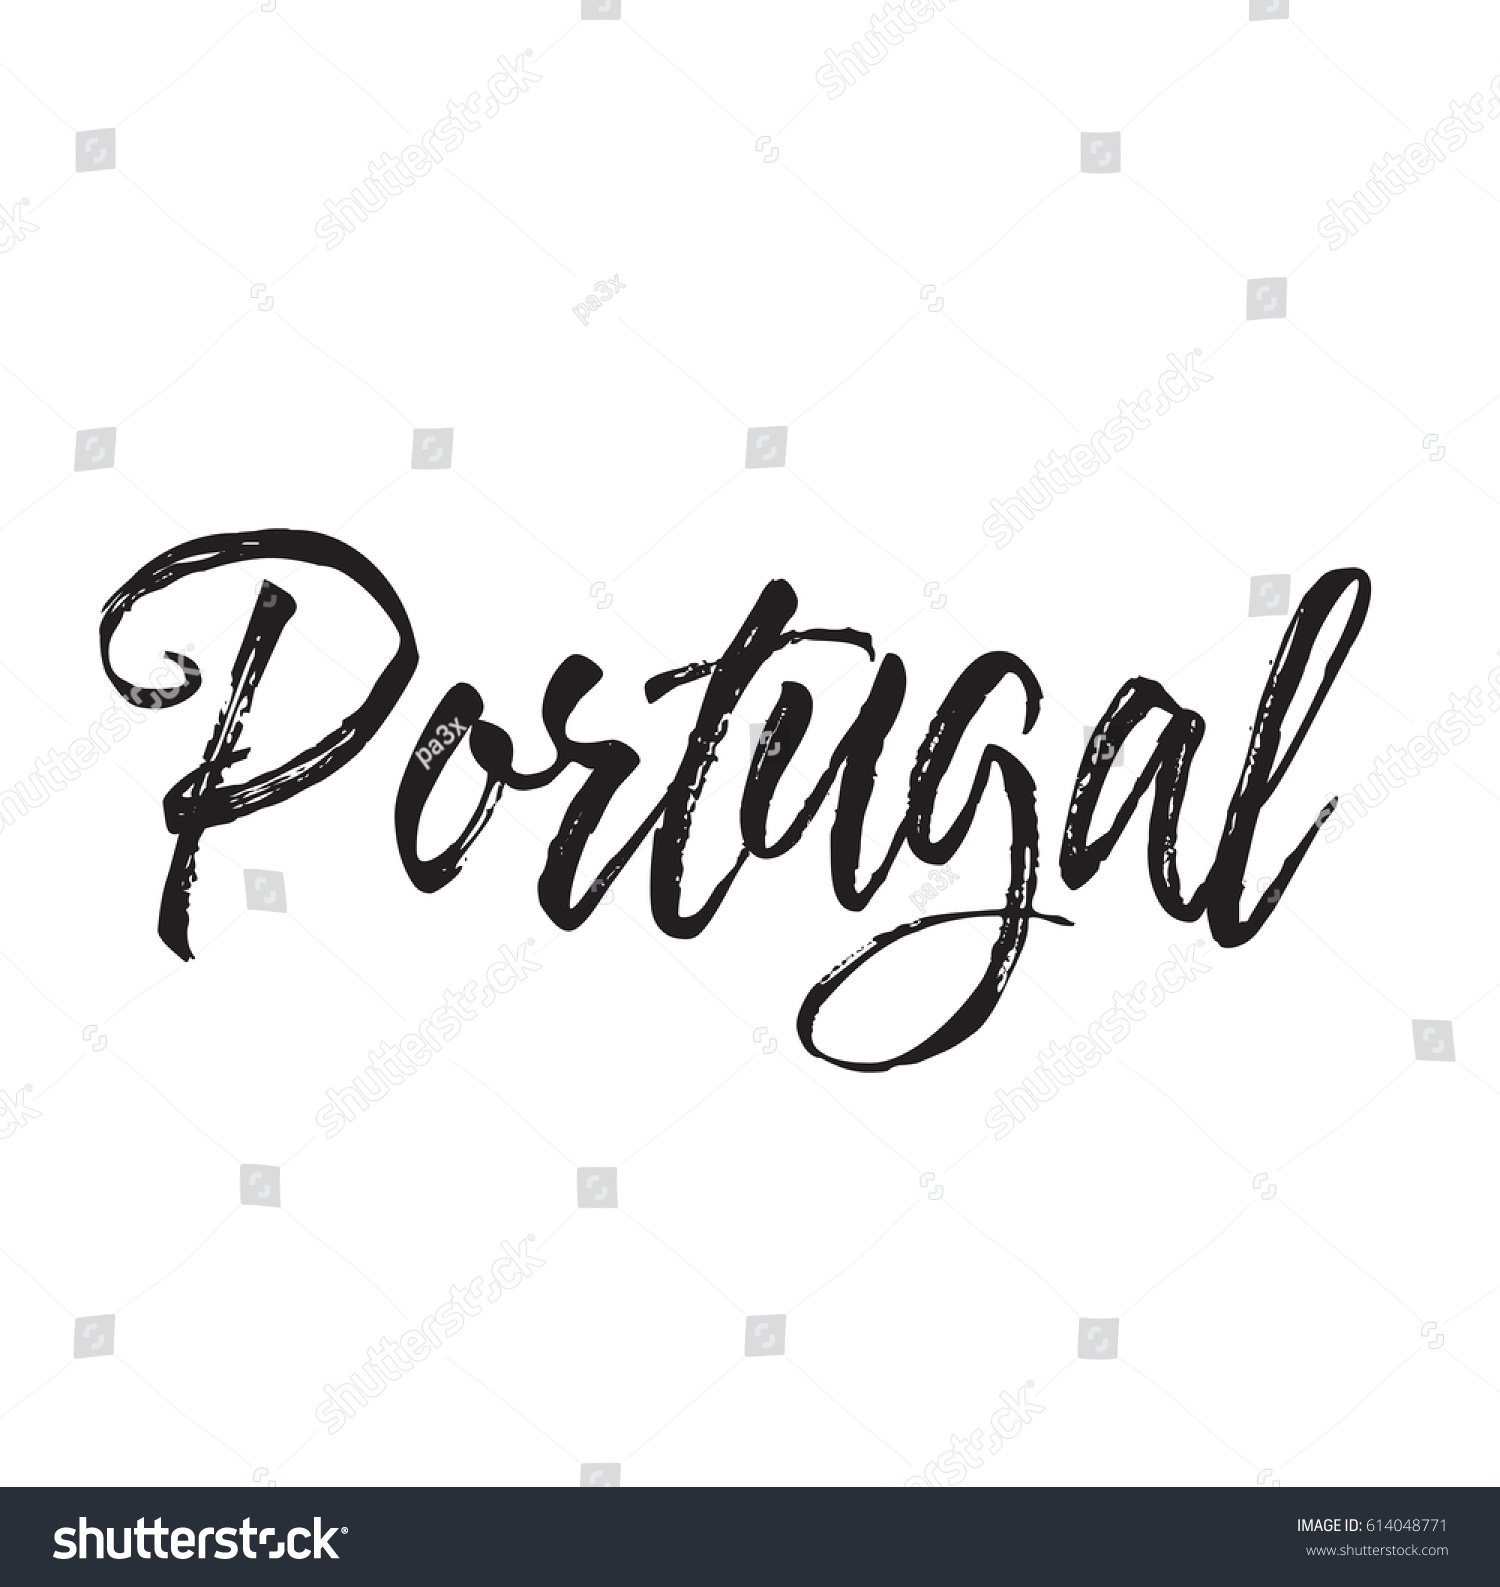 Portugal Text Design Vector Calligraphy Typography Stock